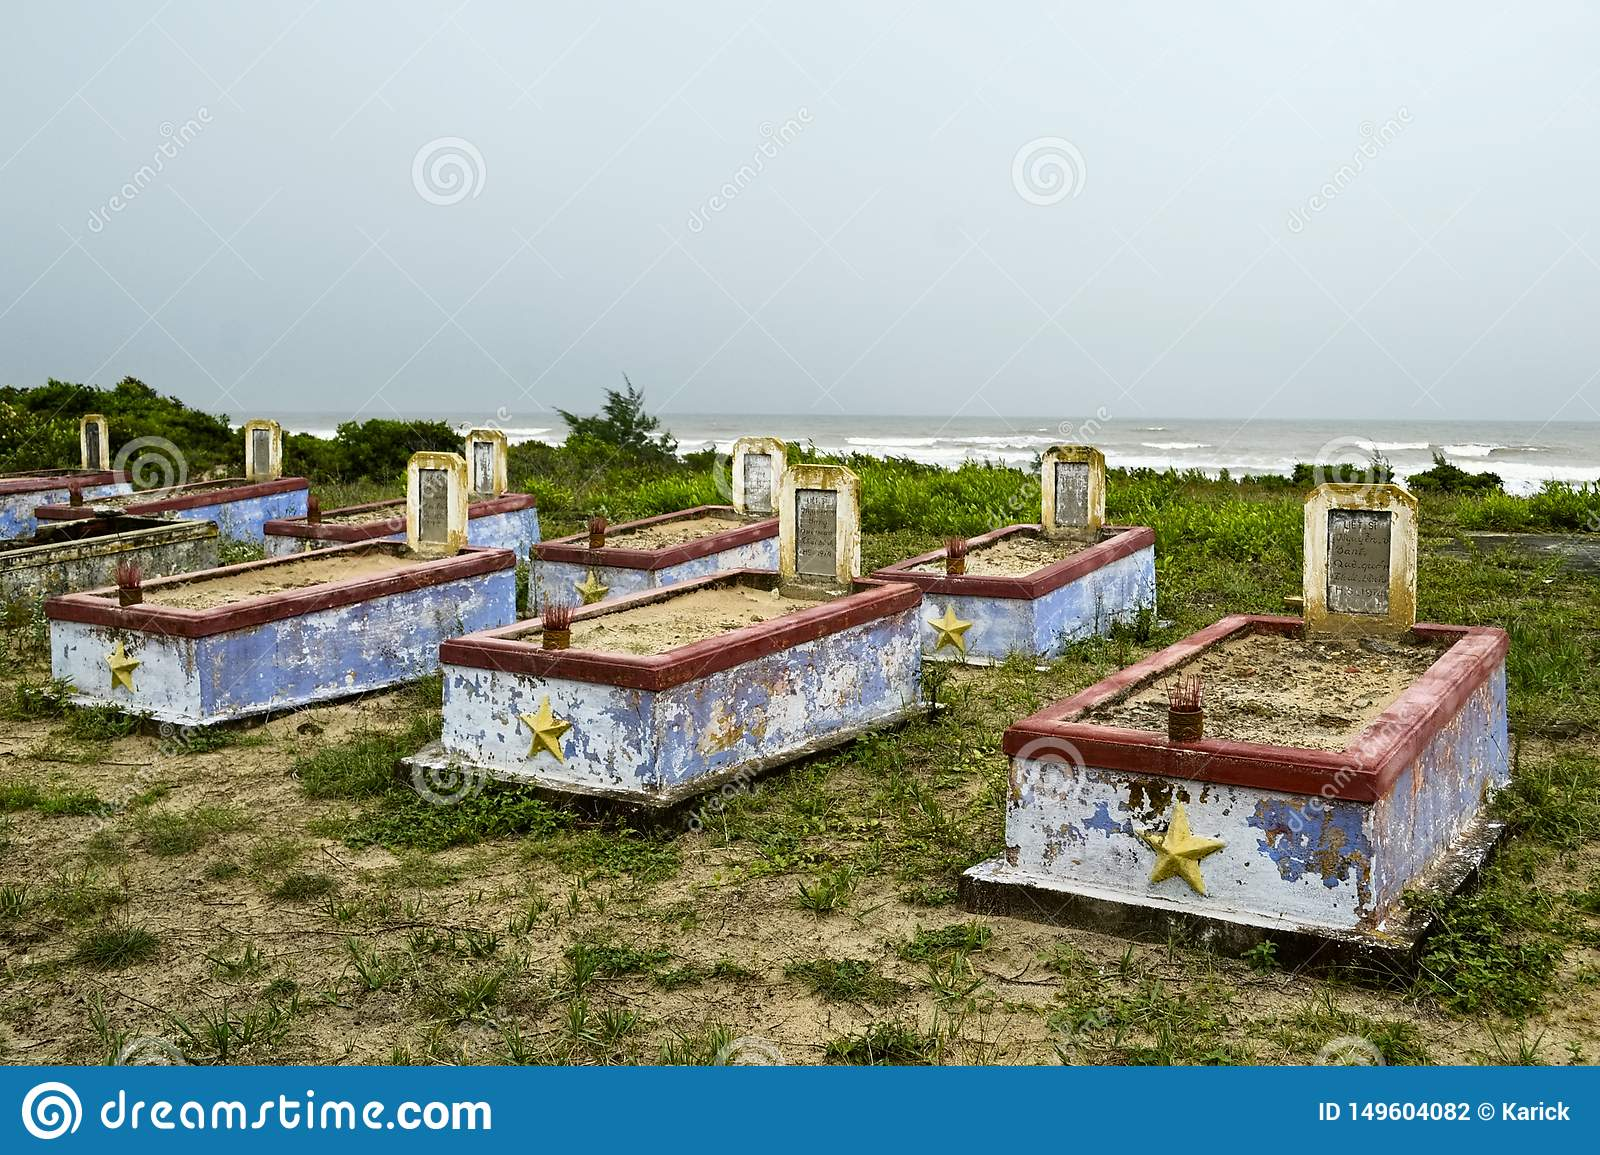 Cemetery of the Vietnam War with old weathered tombstones